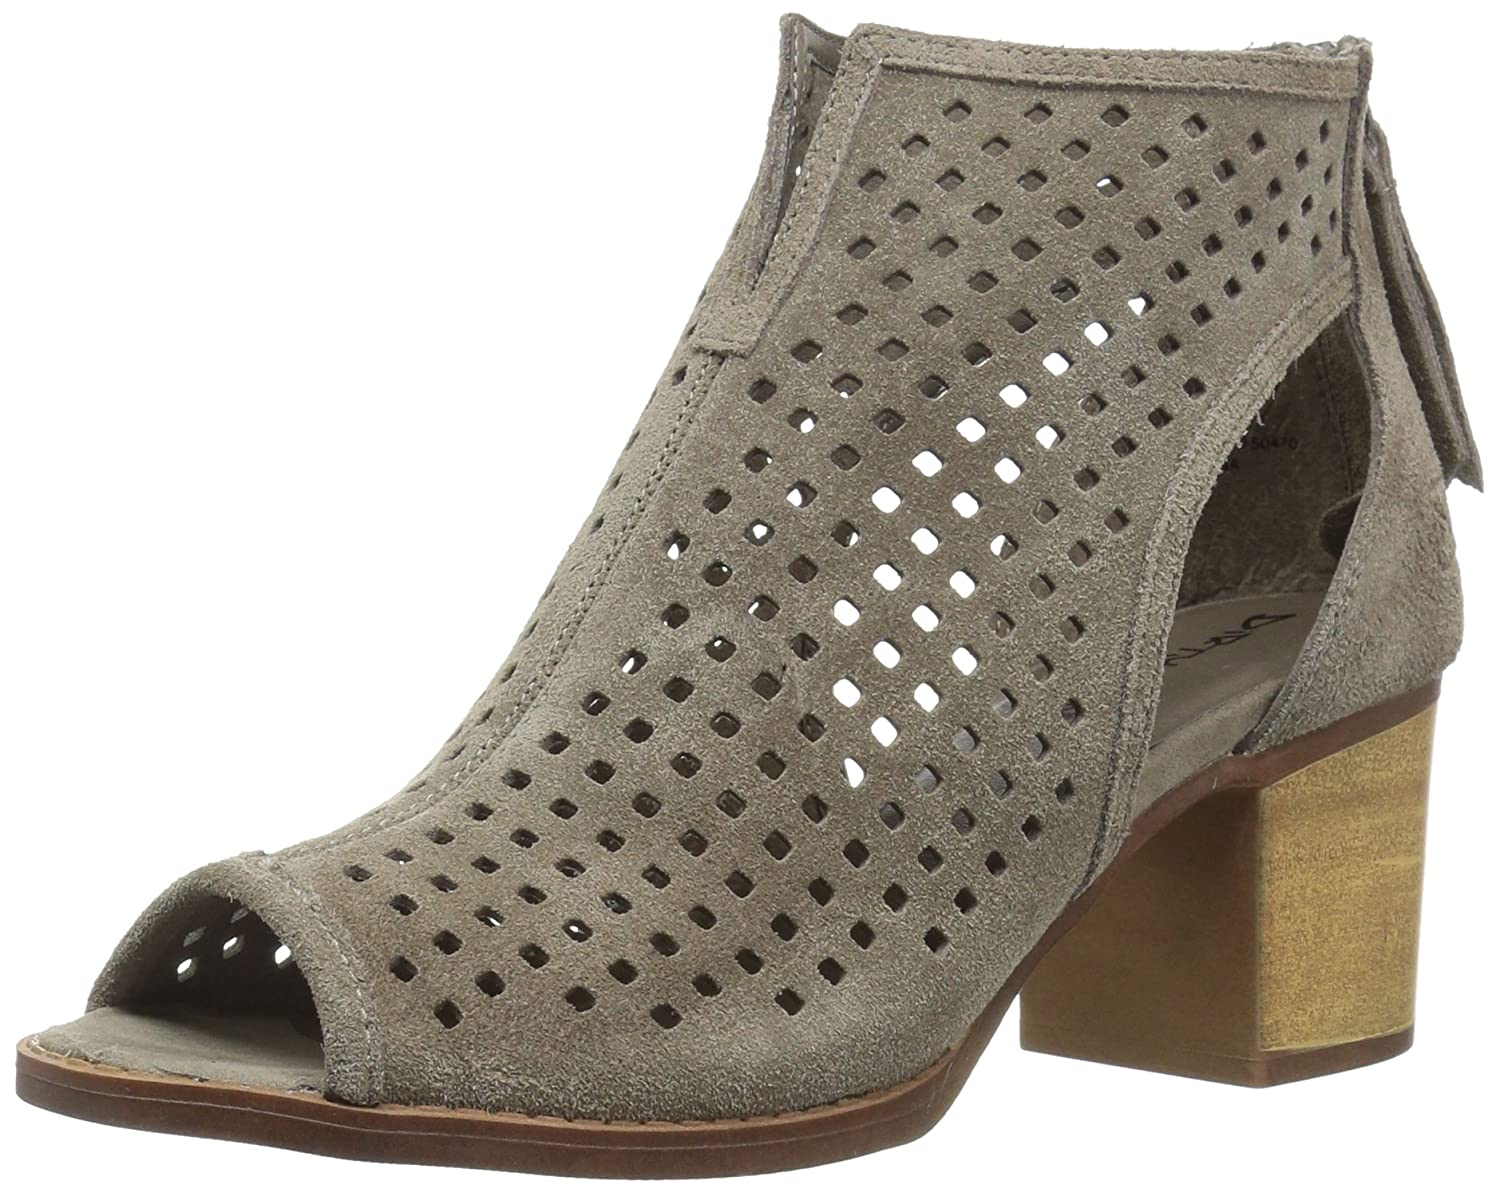 Dirty Laundry by Chinese Laundry Women's Tessa Ankle Boot B072JBM3VL 6.5 B(M) US|Grey Split Suede